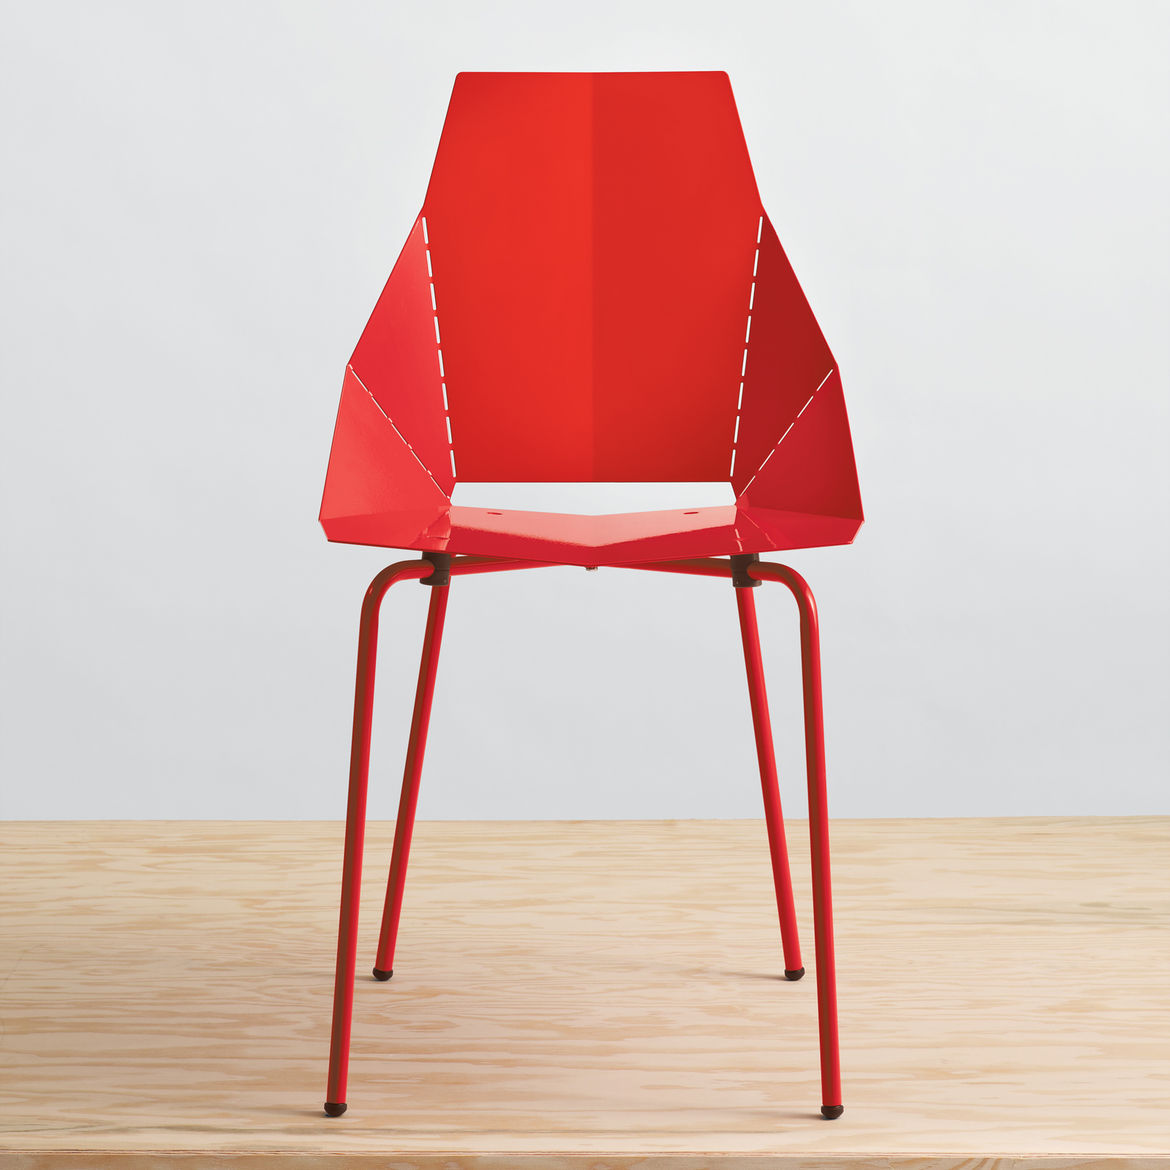 Real Good chair by Blu Dot